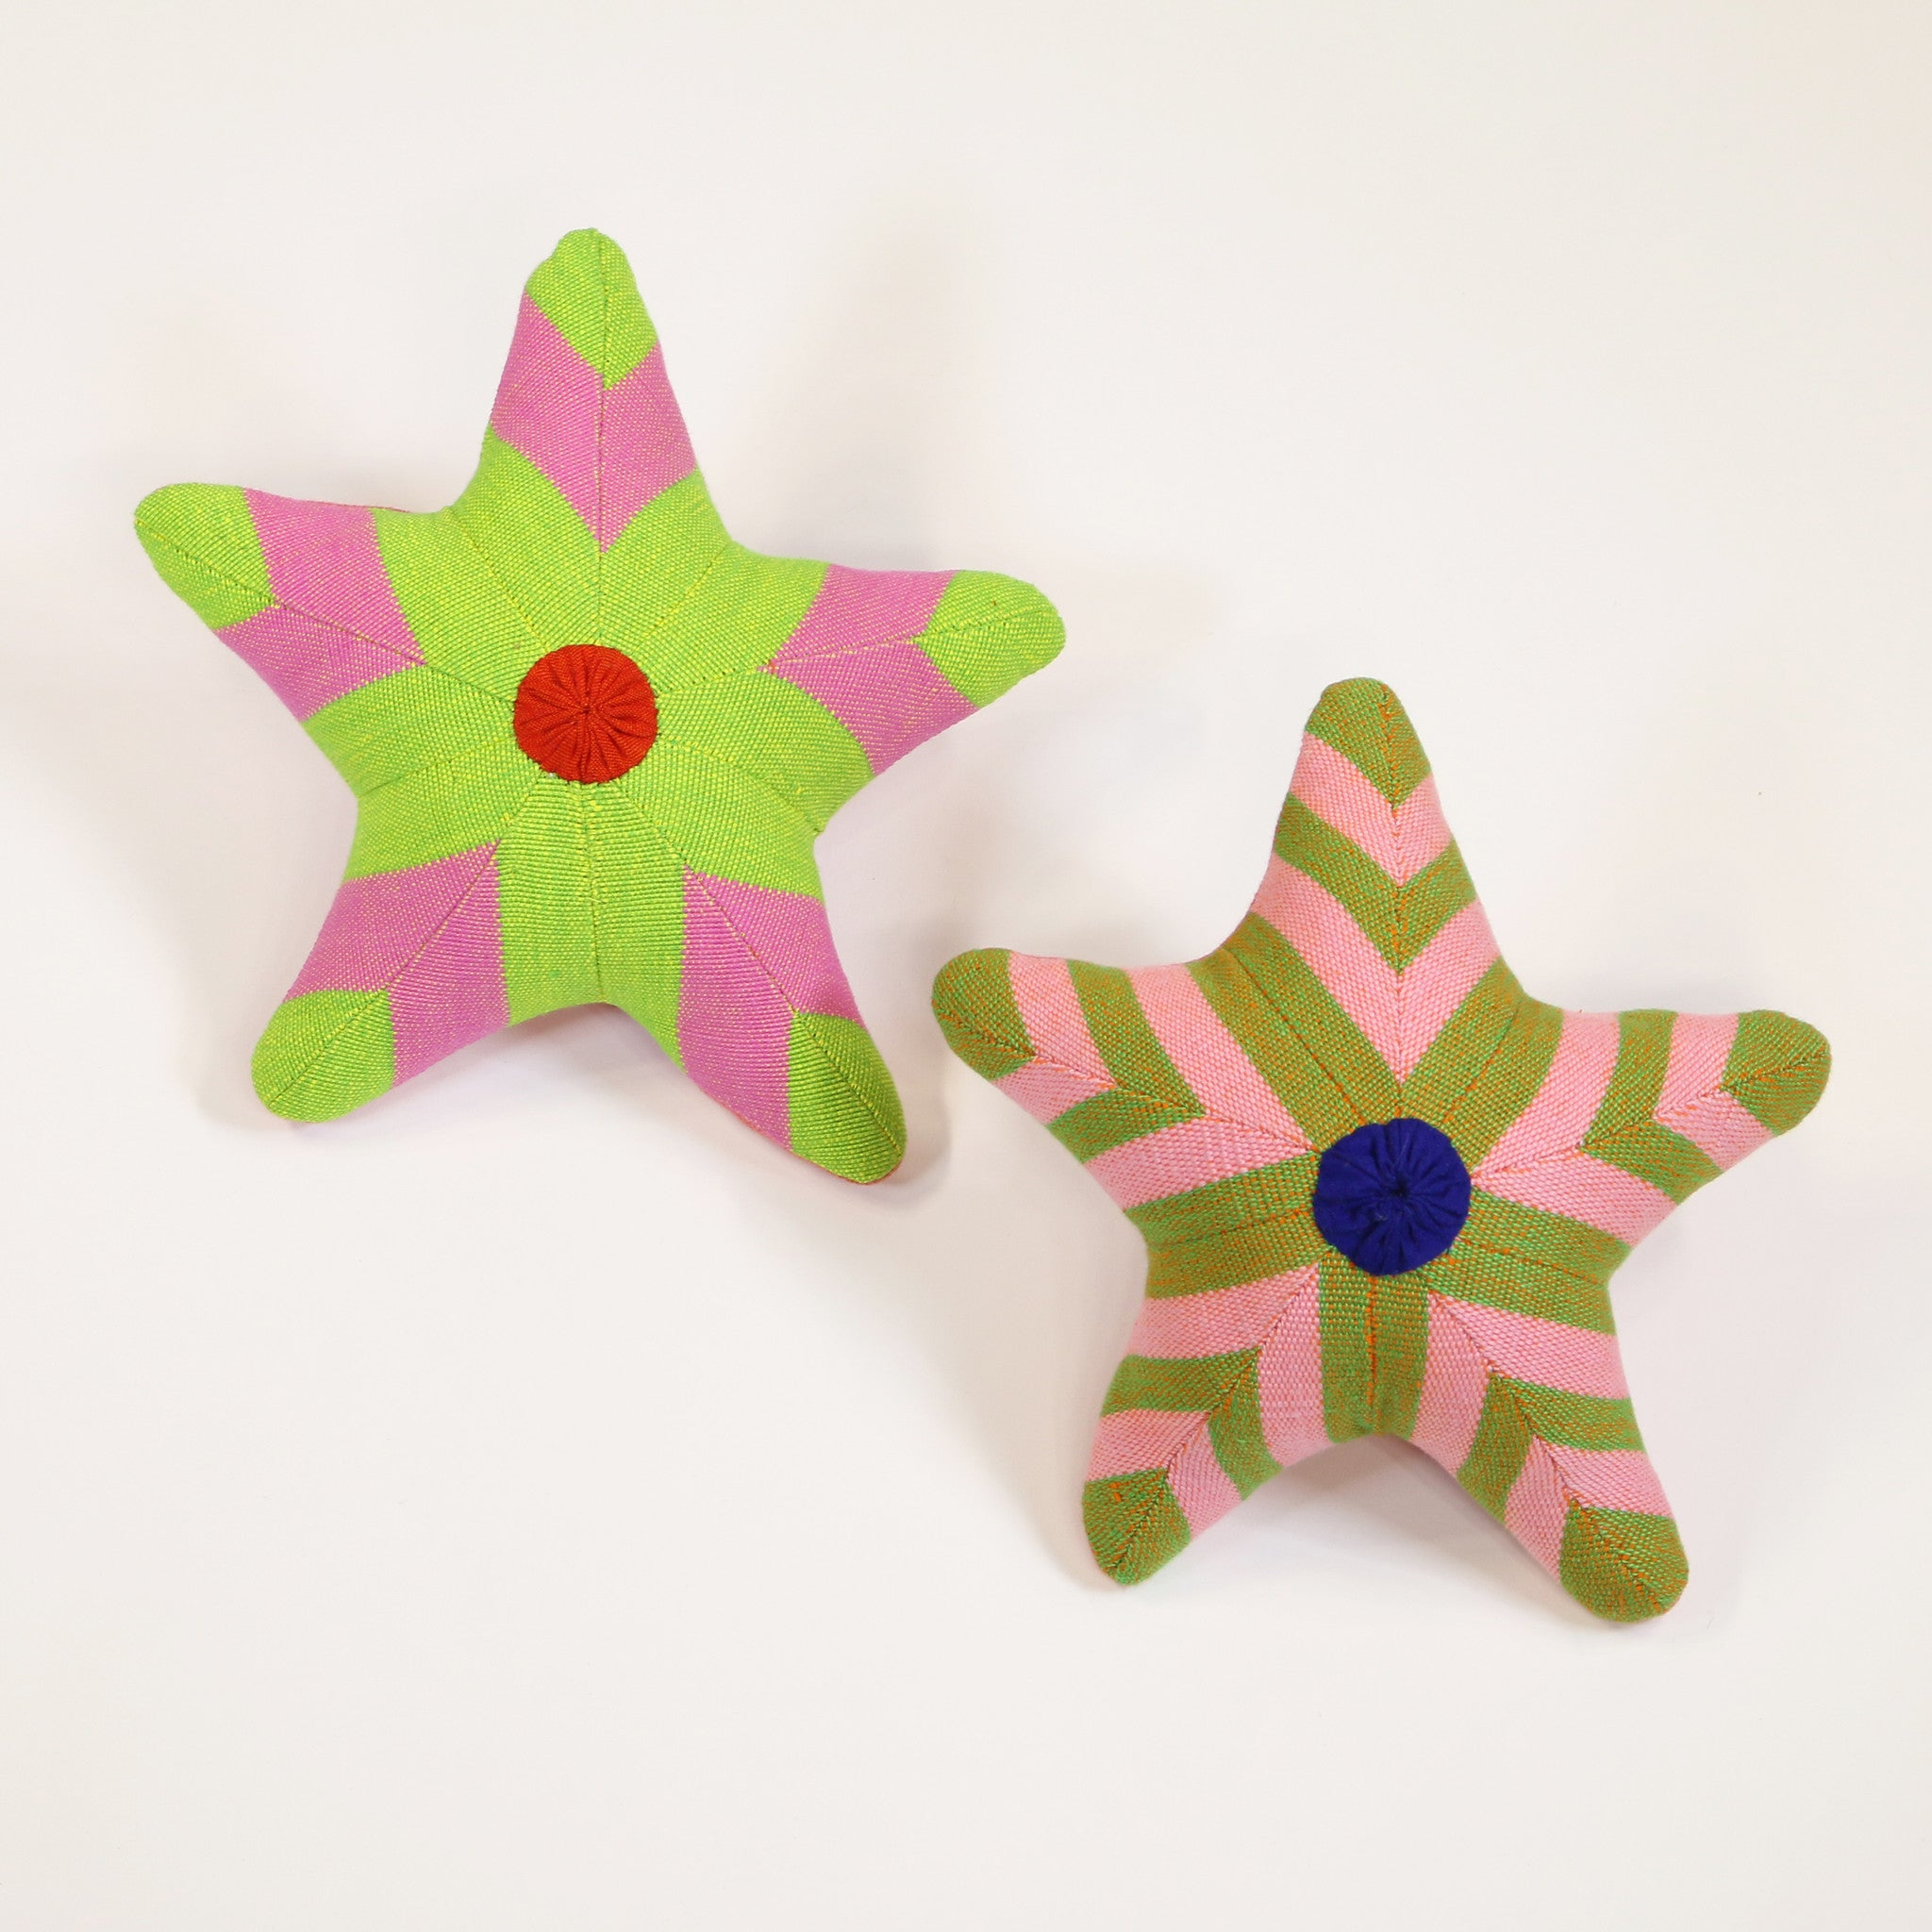 Stacey, the Starfish – all patterns (front view)